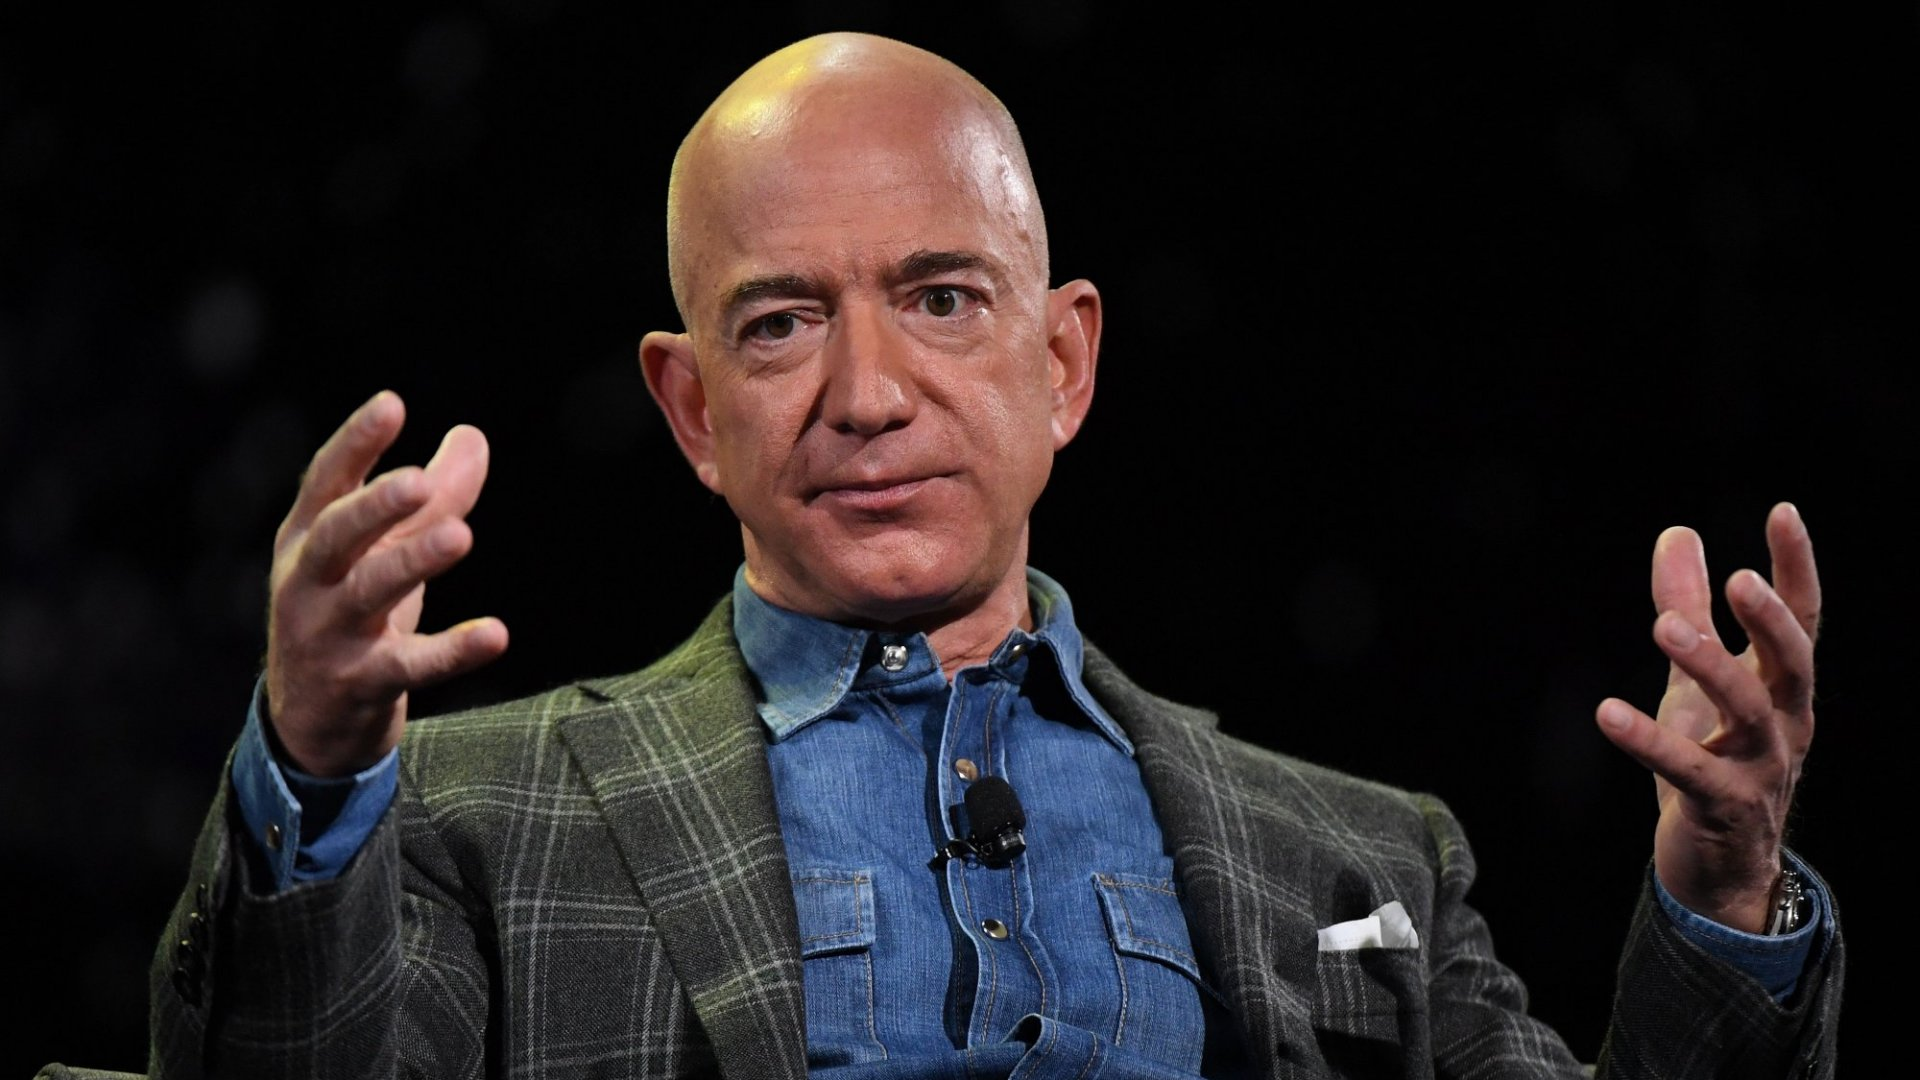 5 Takeaways From Amazon's Annual Shareholder Letter